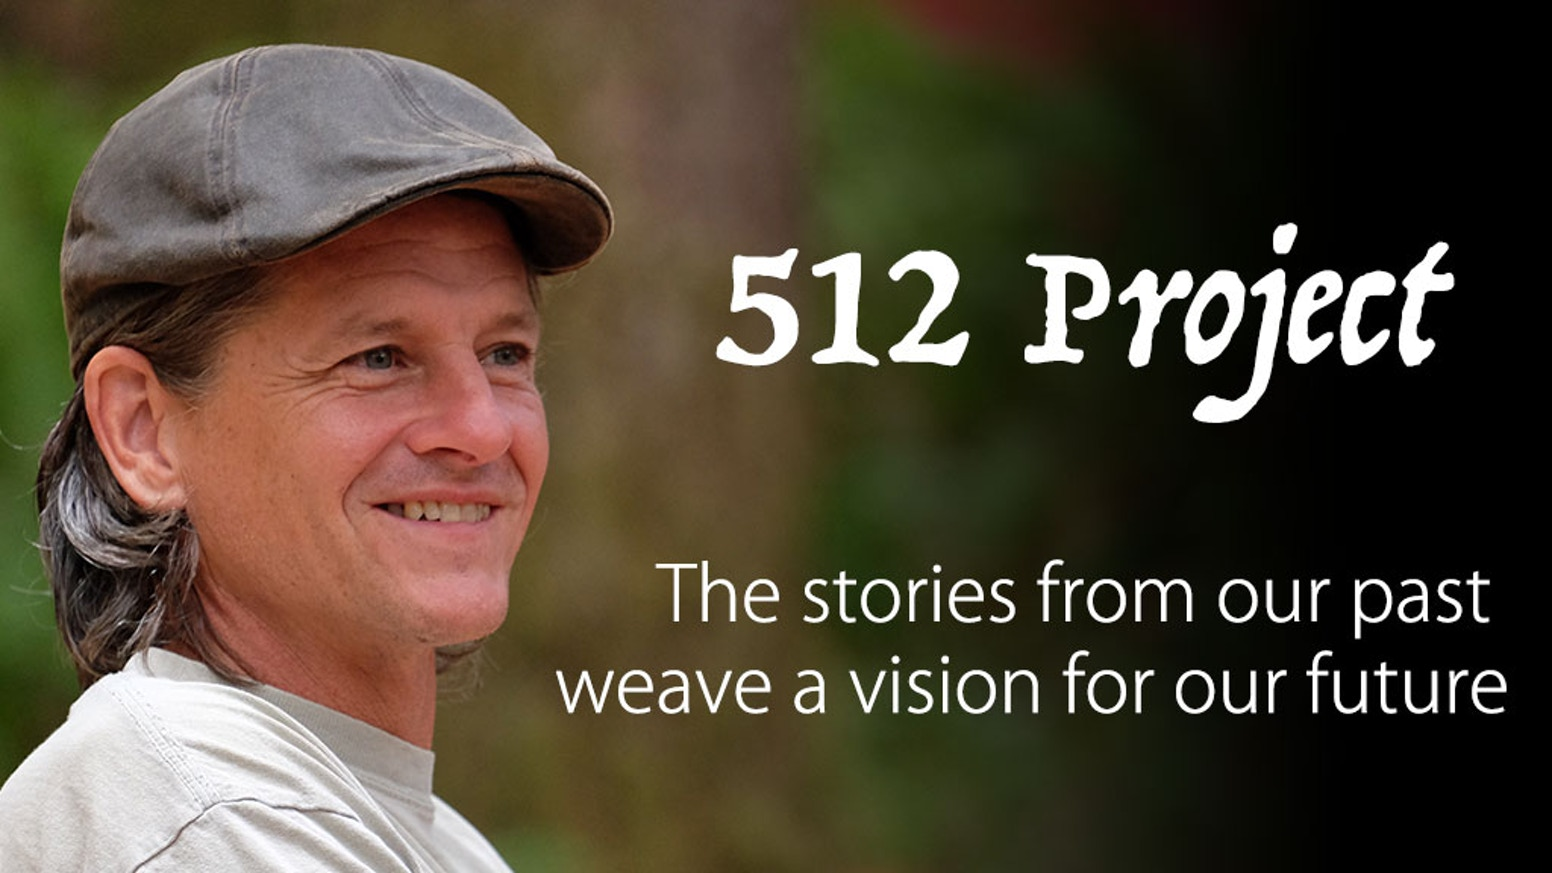 The stories from our past weave a vision for our future as we reveal the fundamental processes of interconnection.